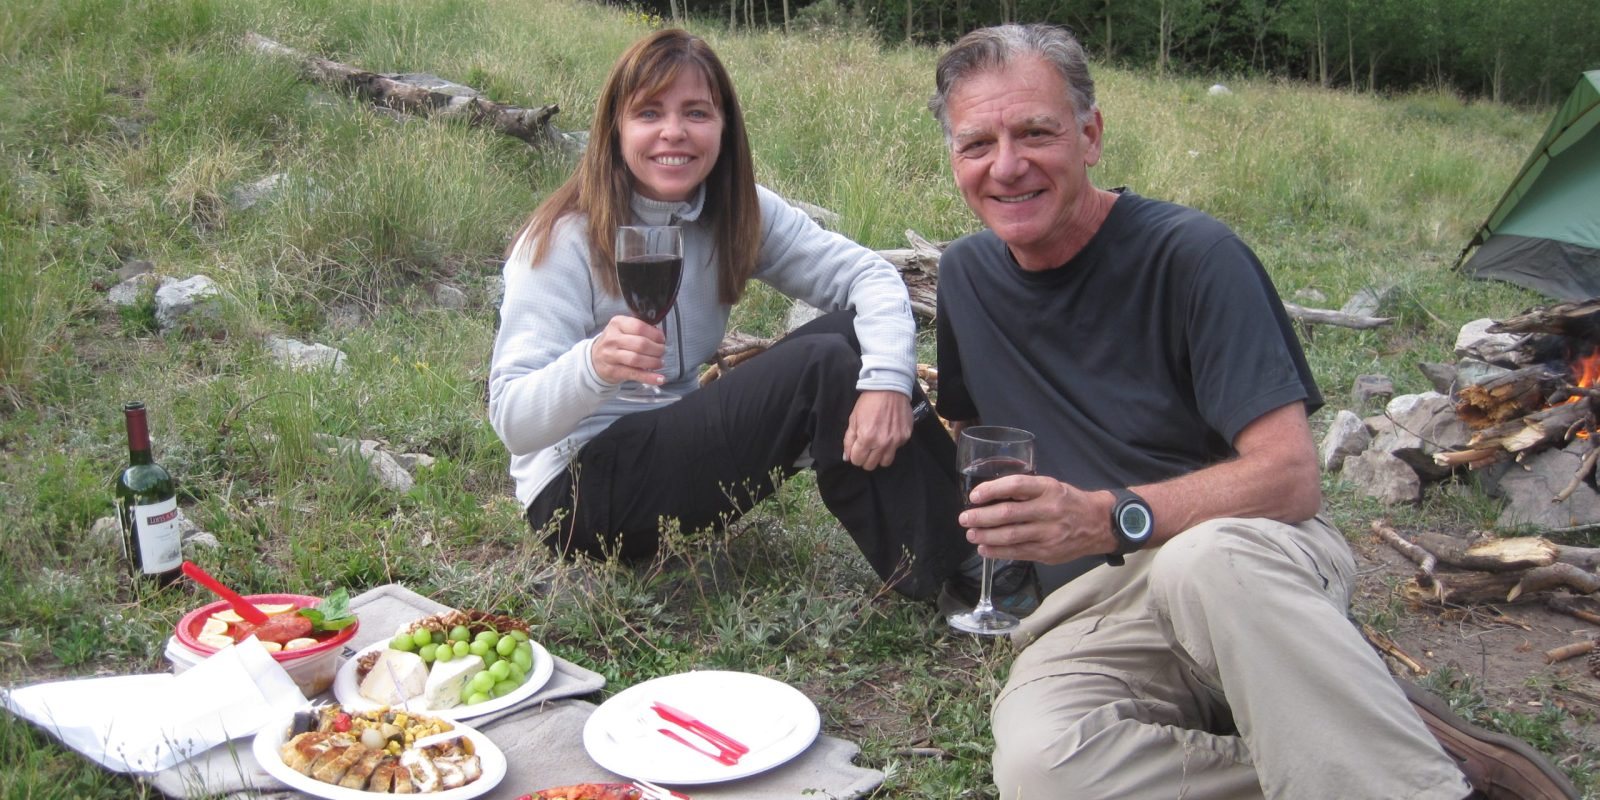 Rick Crandall and Laura Welch enjoying a gourmet outdoor meal